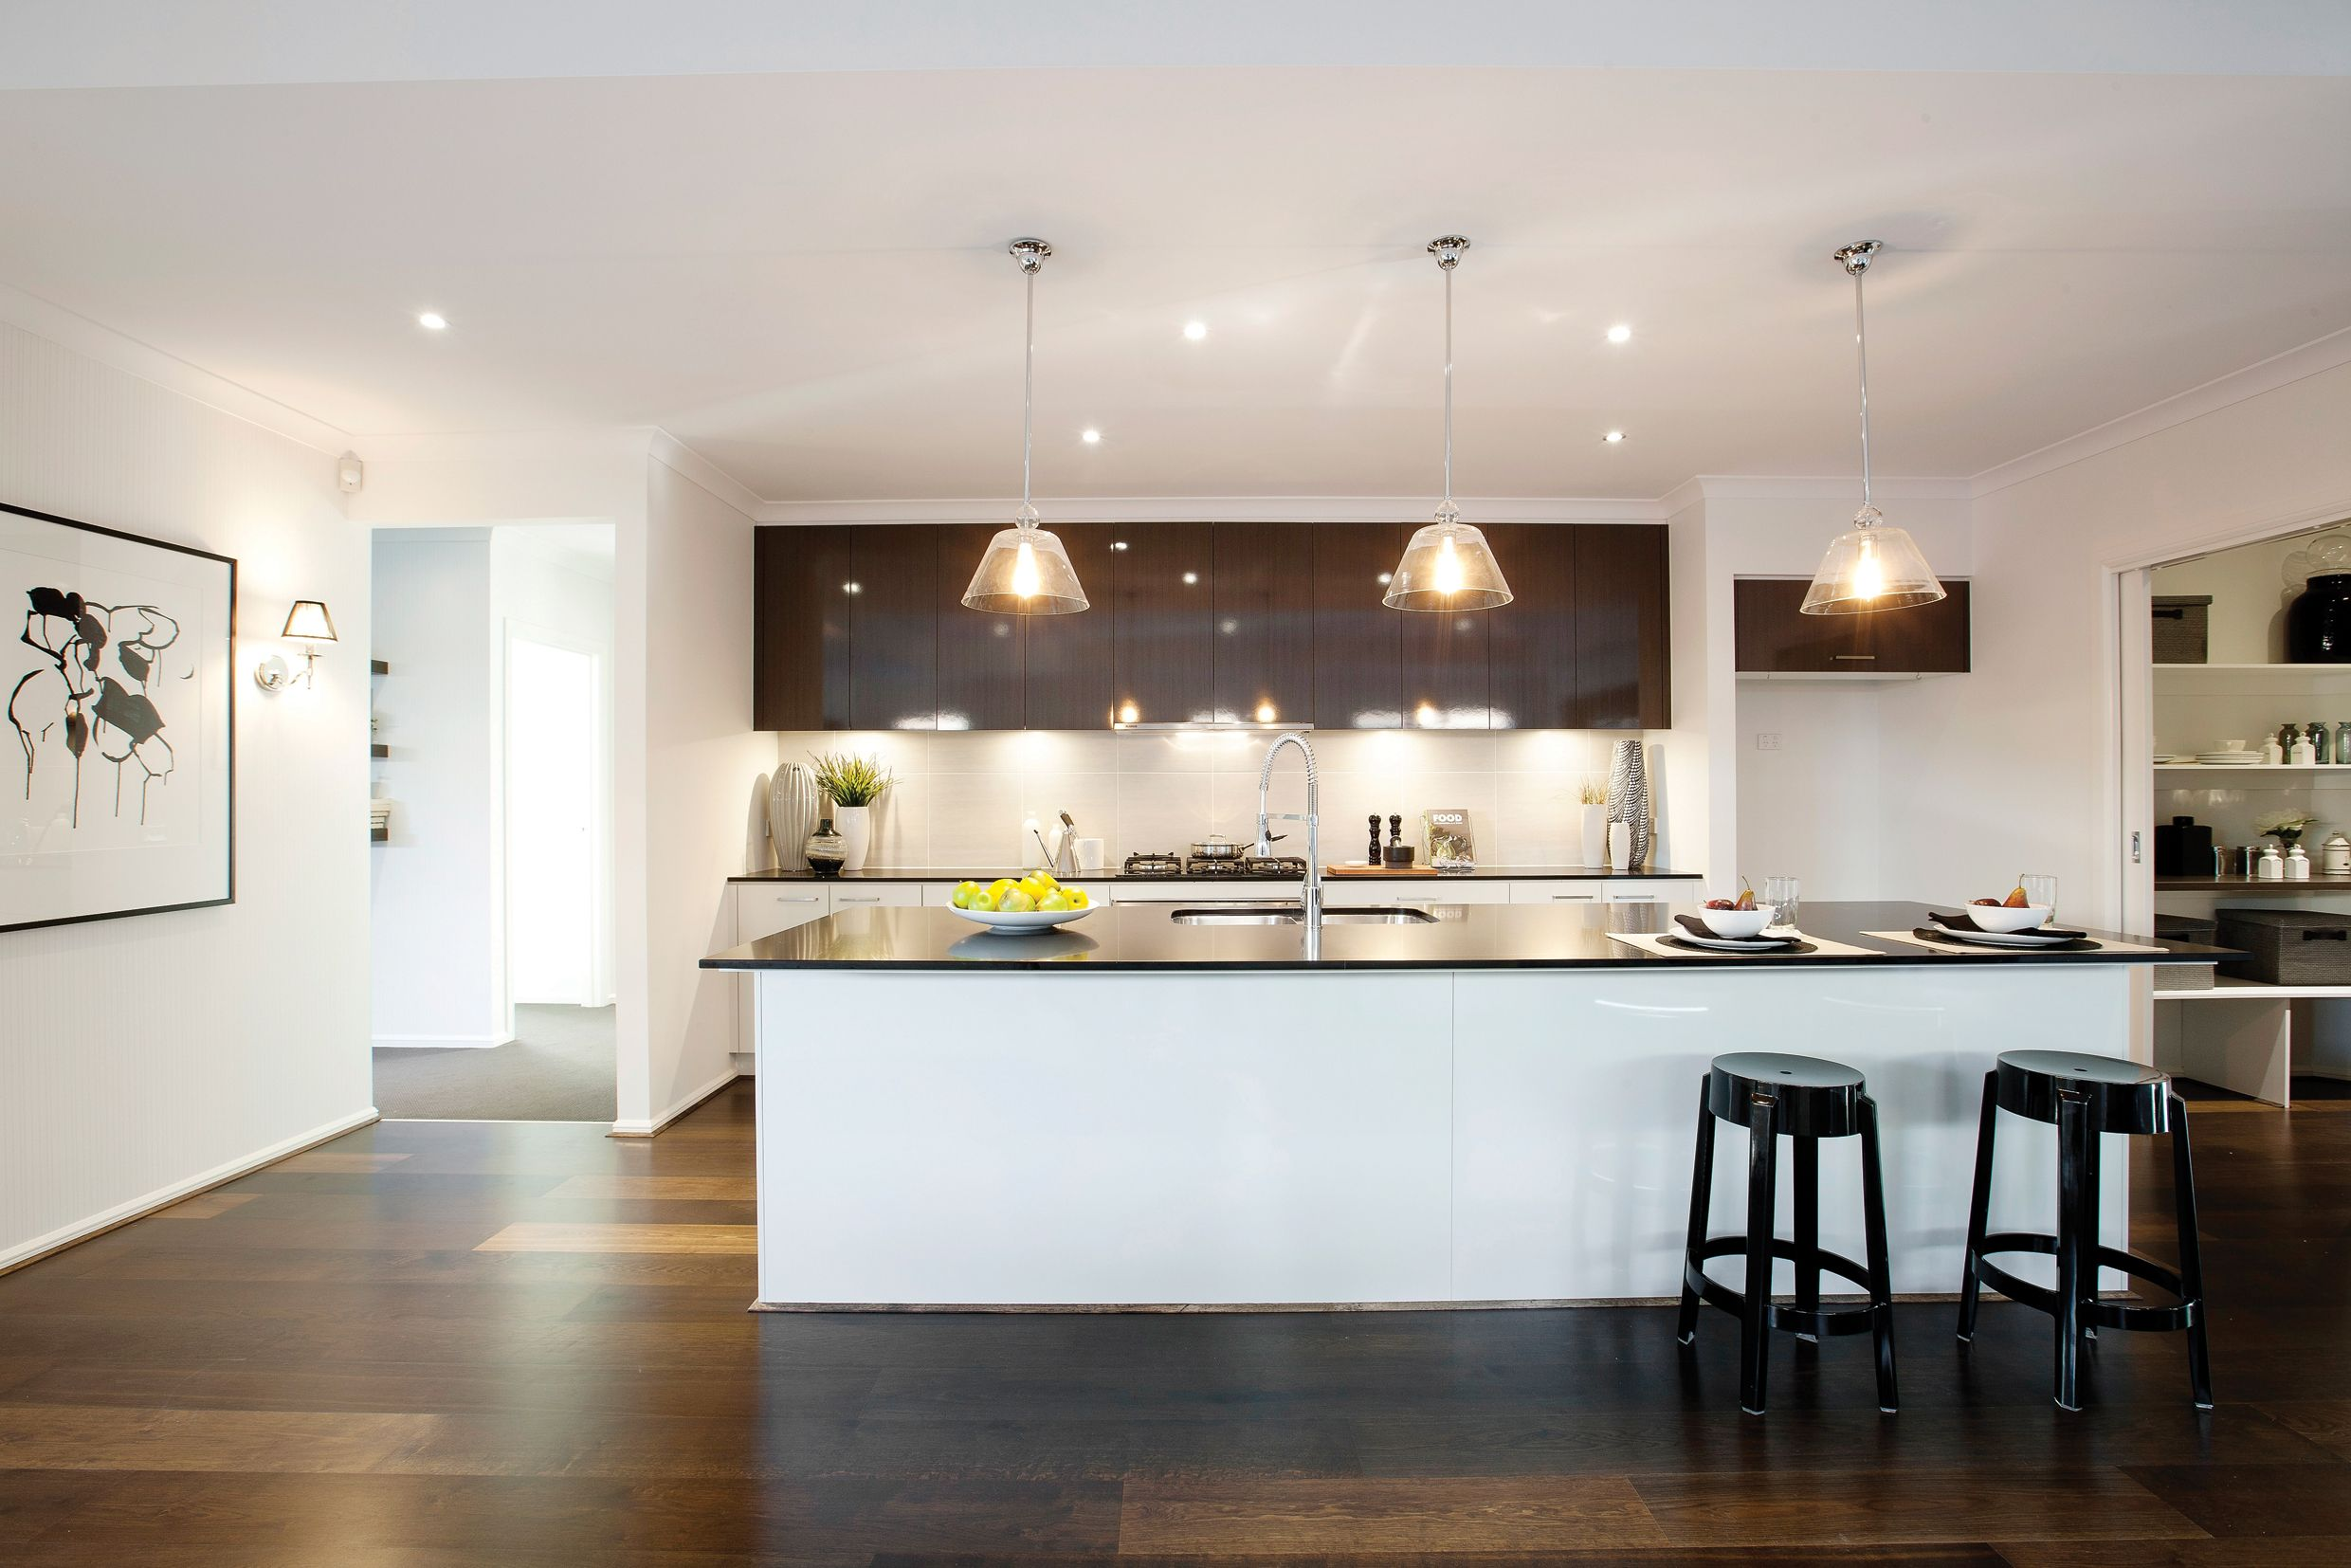 Dunedin 29 Featuring The Fifth Avenue World Of Style Designer Category Modern Kitchen Design Transitional Kitchen Design Home Decor Kitchen